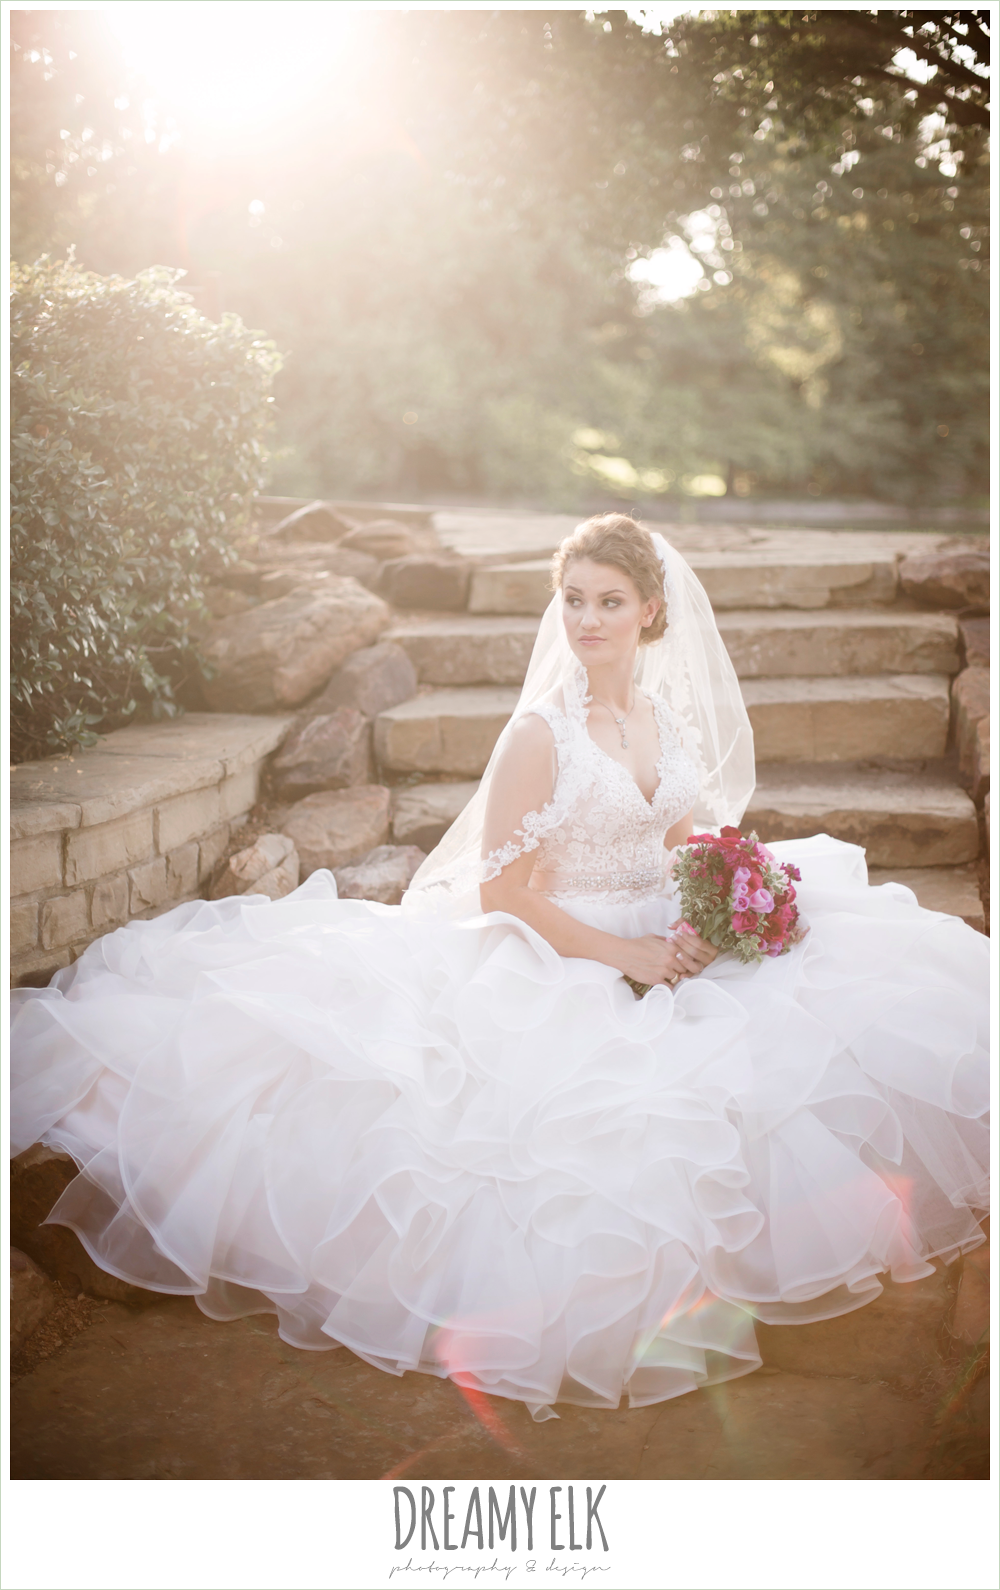 jessie {bridals} lakeside park, dallas, texas — Dreamy Elk ...